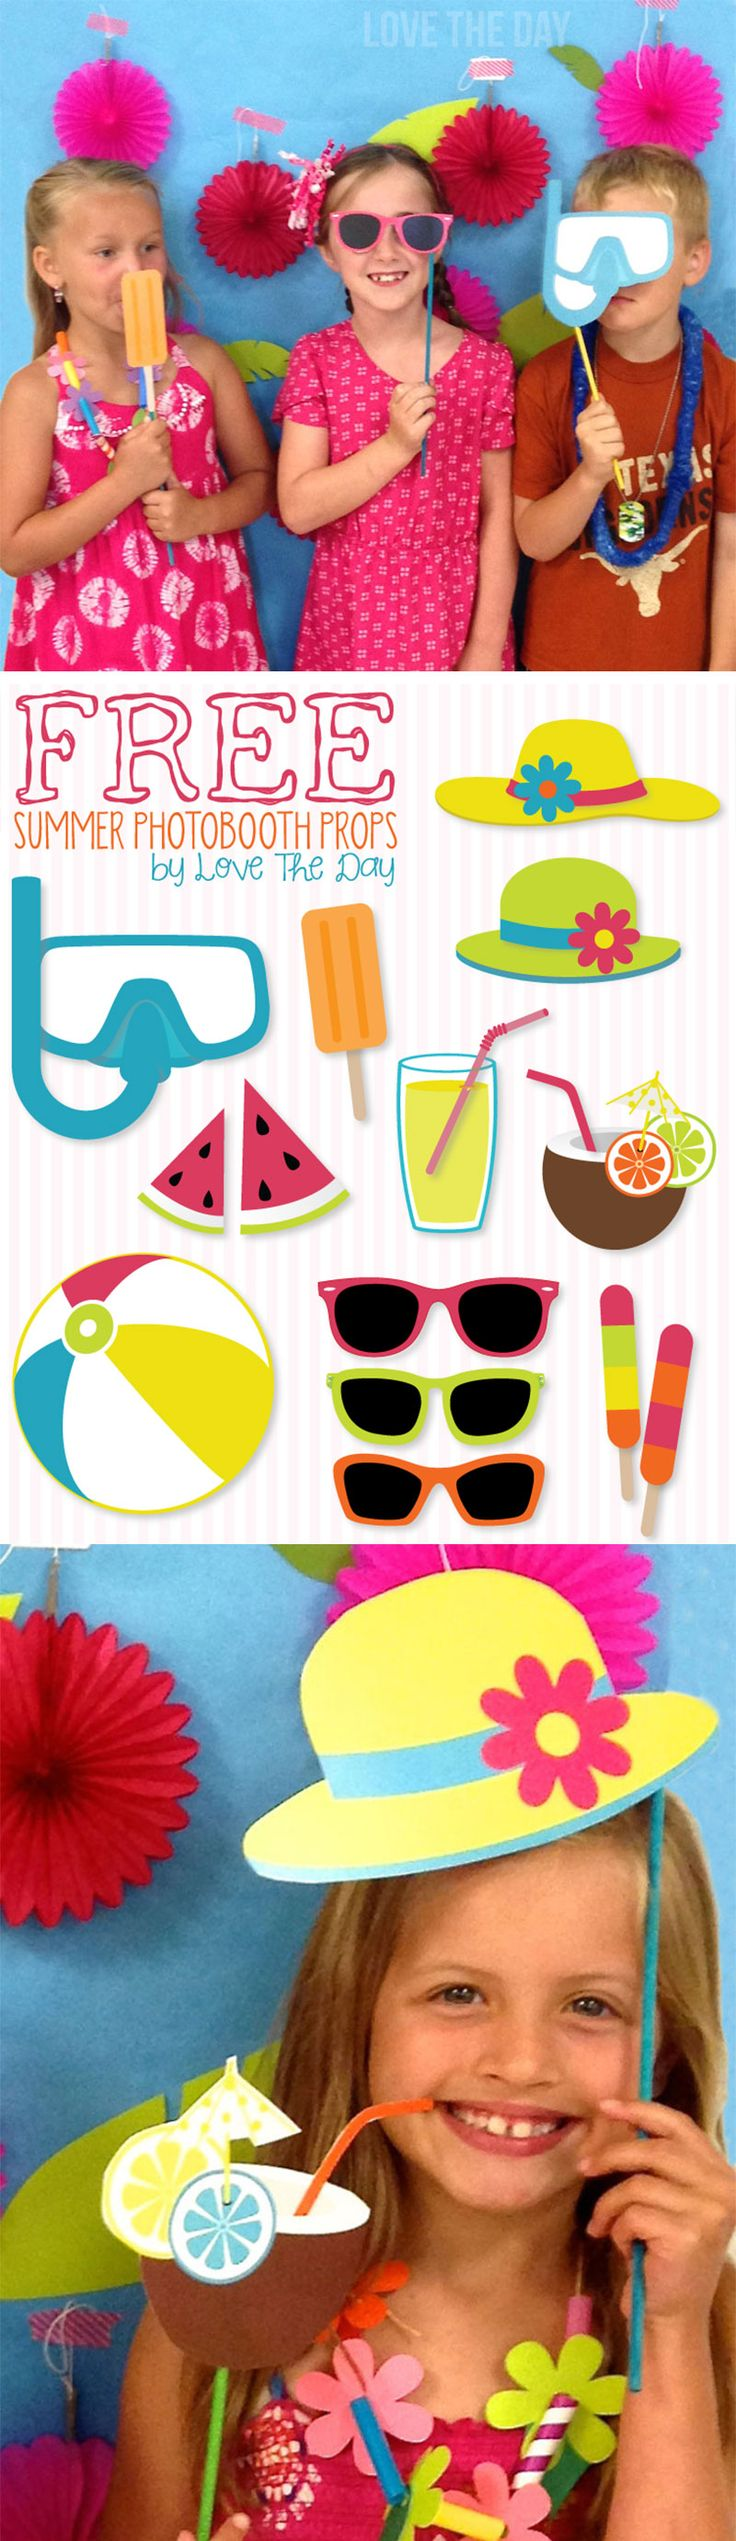 FREE Printable Summer Photobooth Props by Lindi Haws of Love The Day